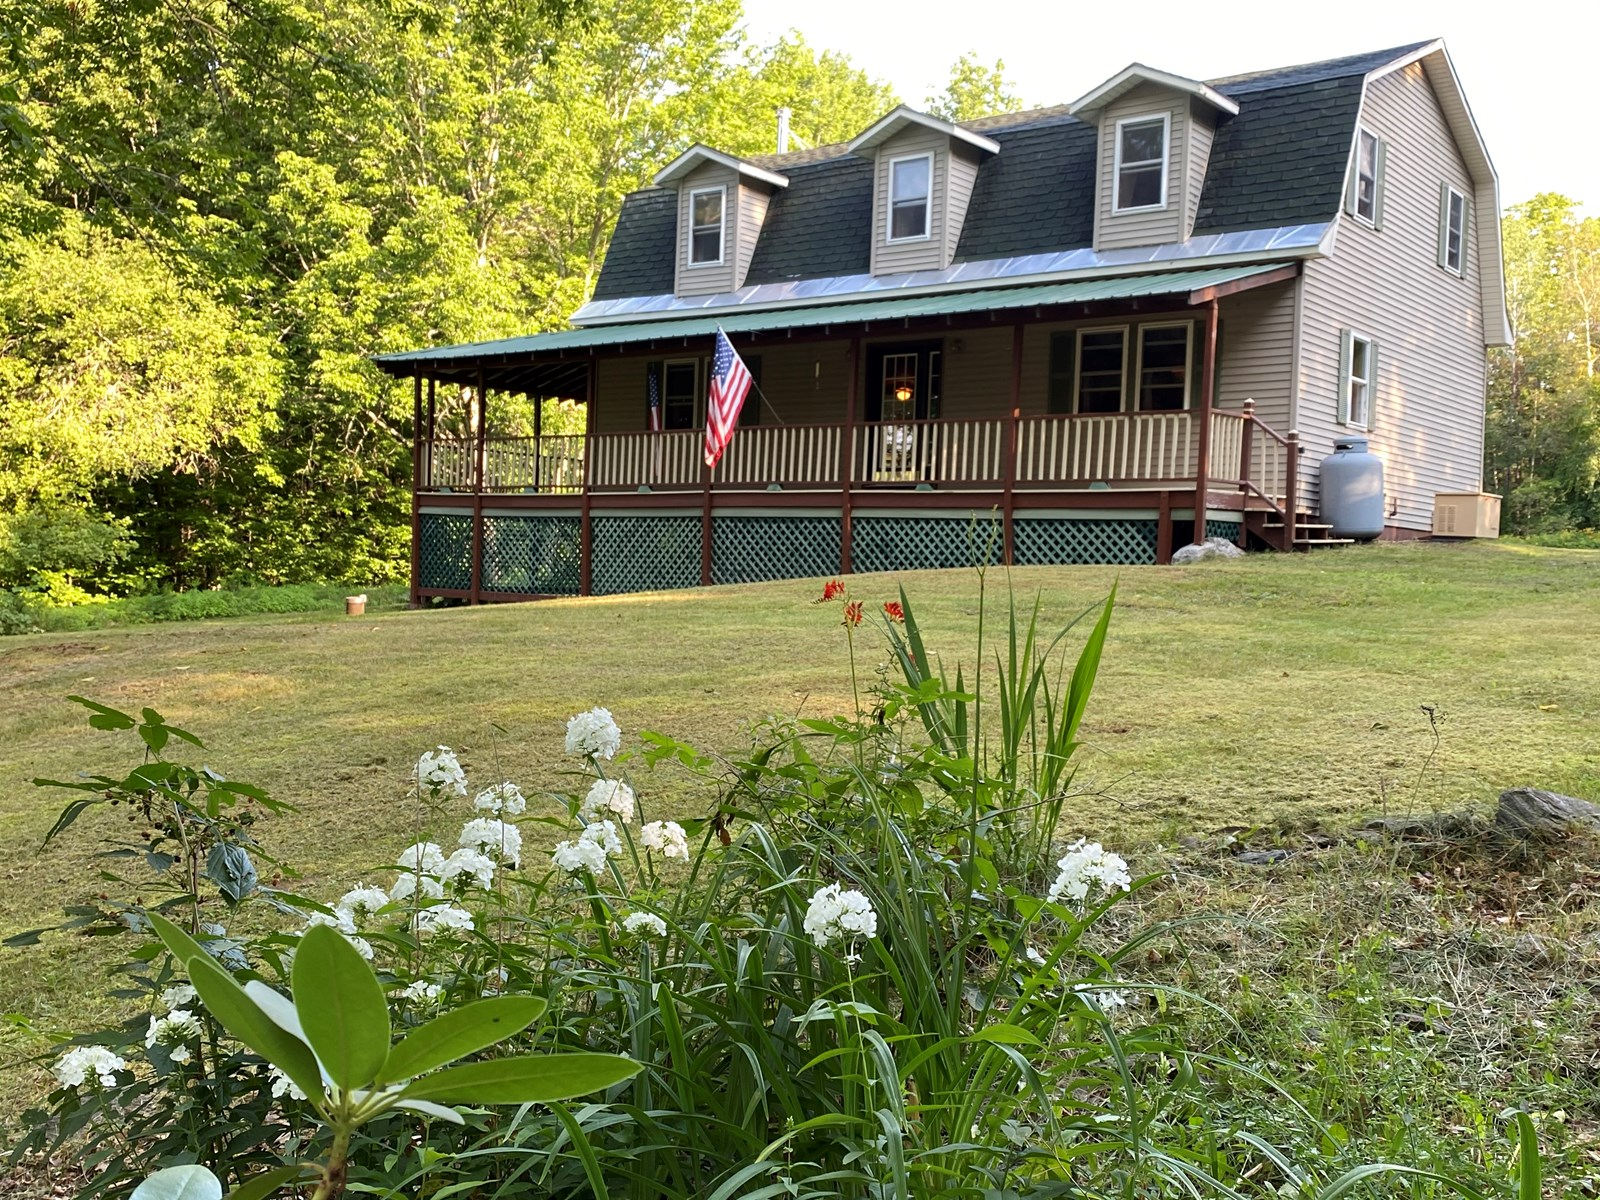 Country Home for Sale in Penobscot County